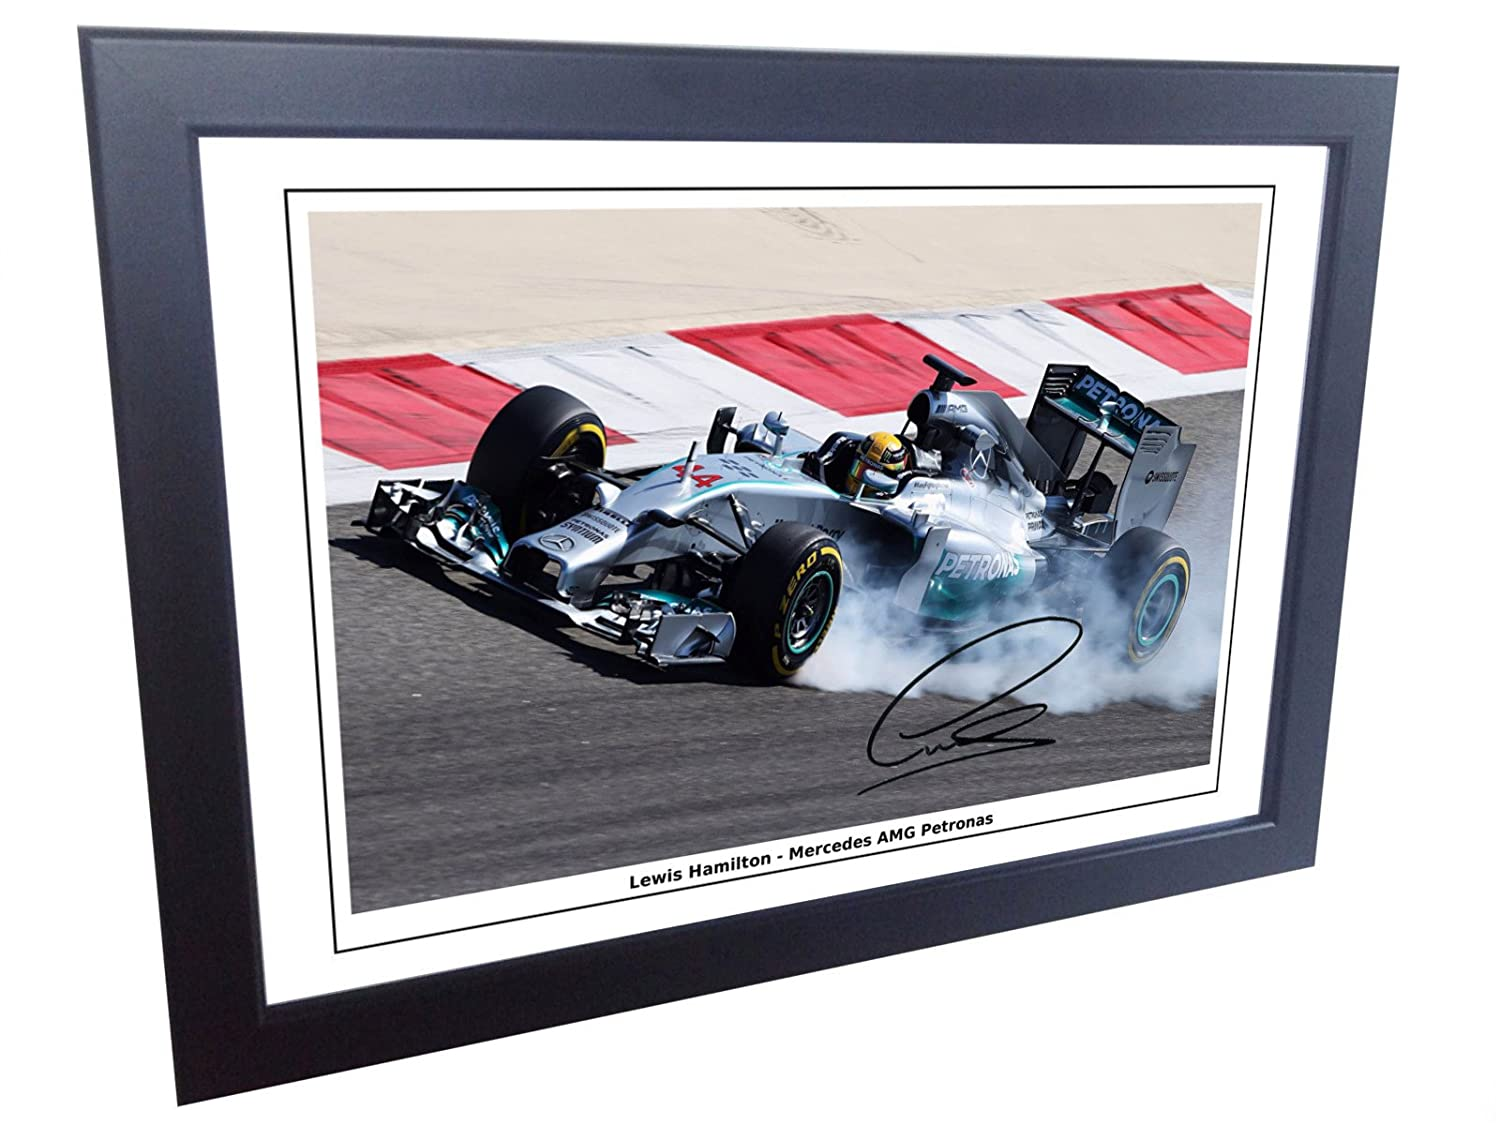 12x8 A4 Signed Lewis Hamilton Mercedes-AMG Petronas Autographed Photo Photograph Picture Frame Motor Sport Formula 1 F1 Gift gift kicks